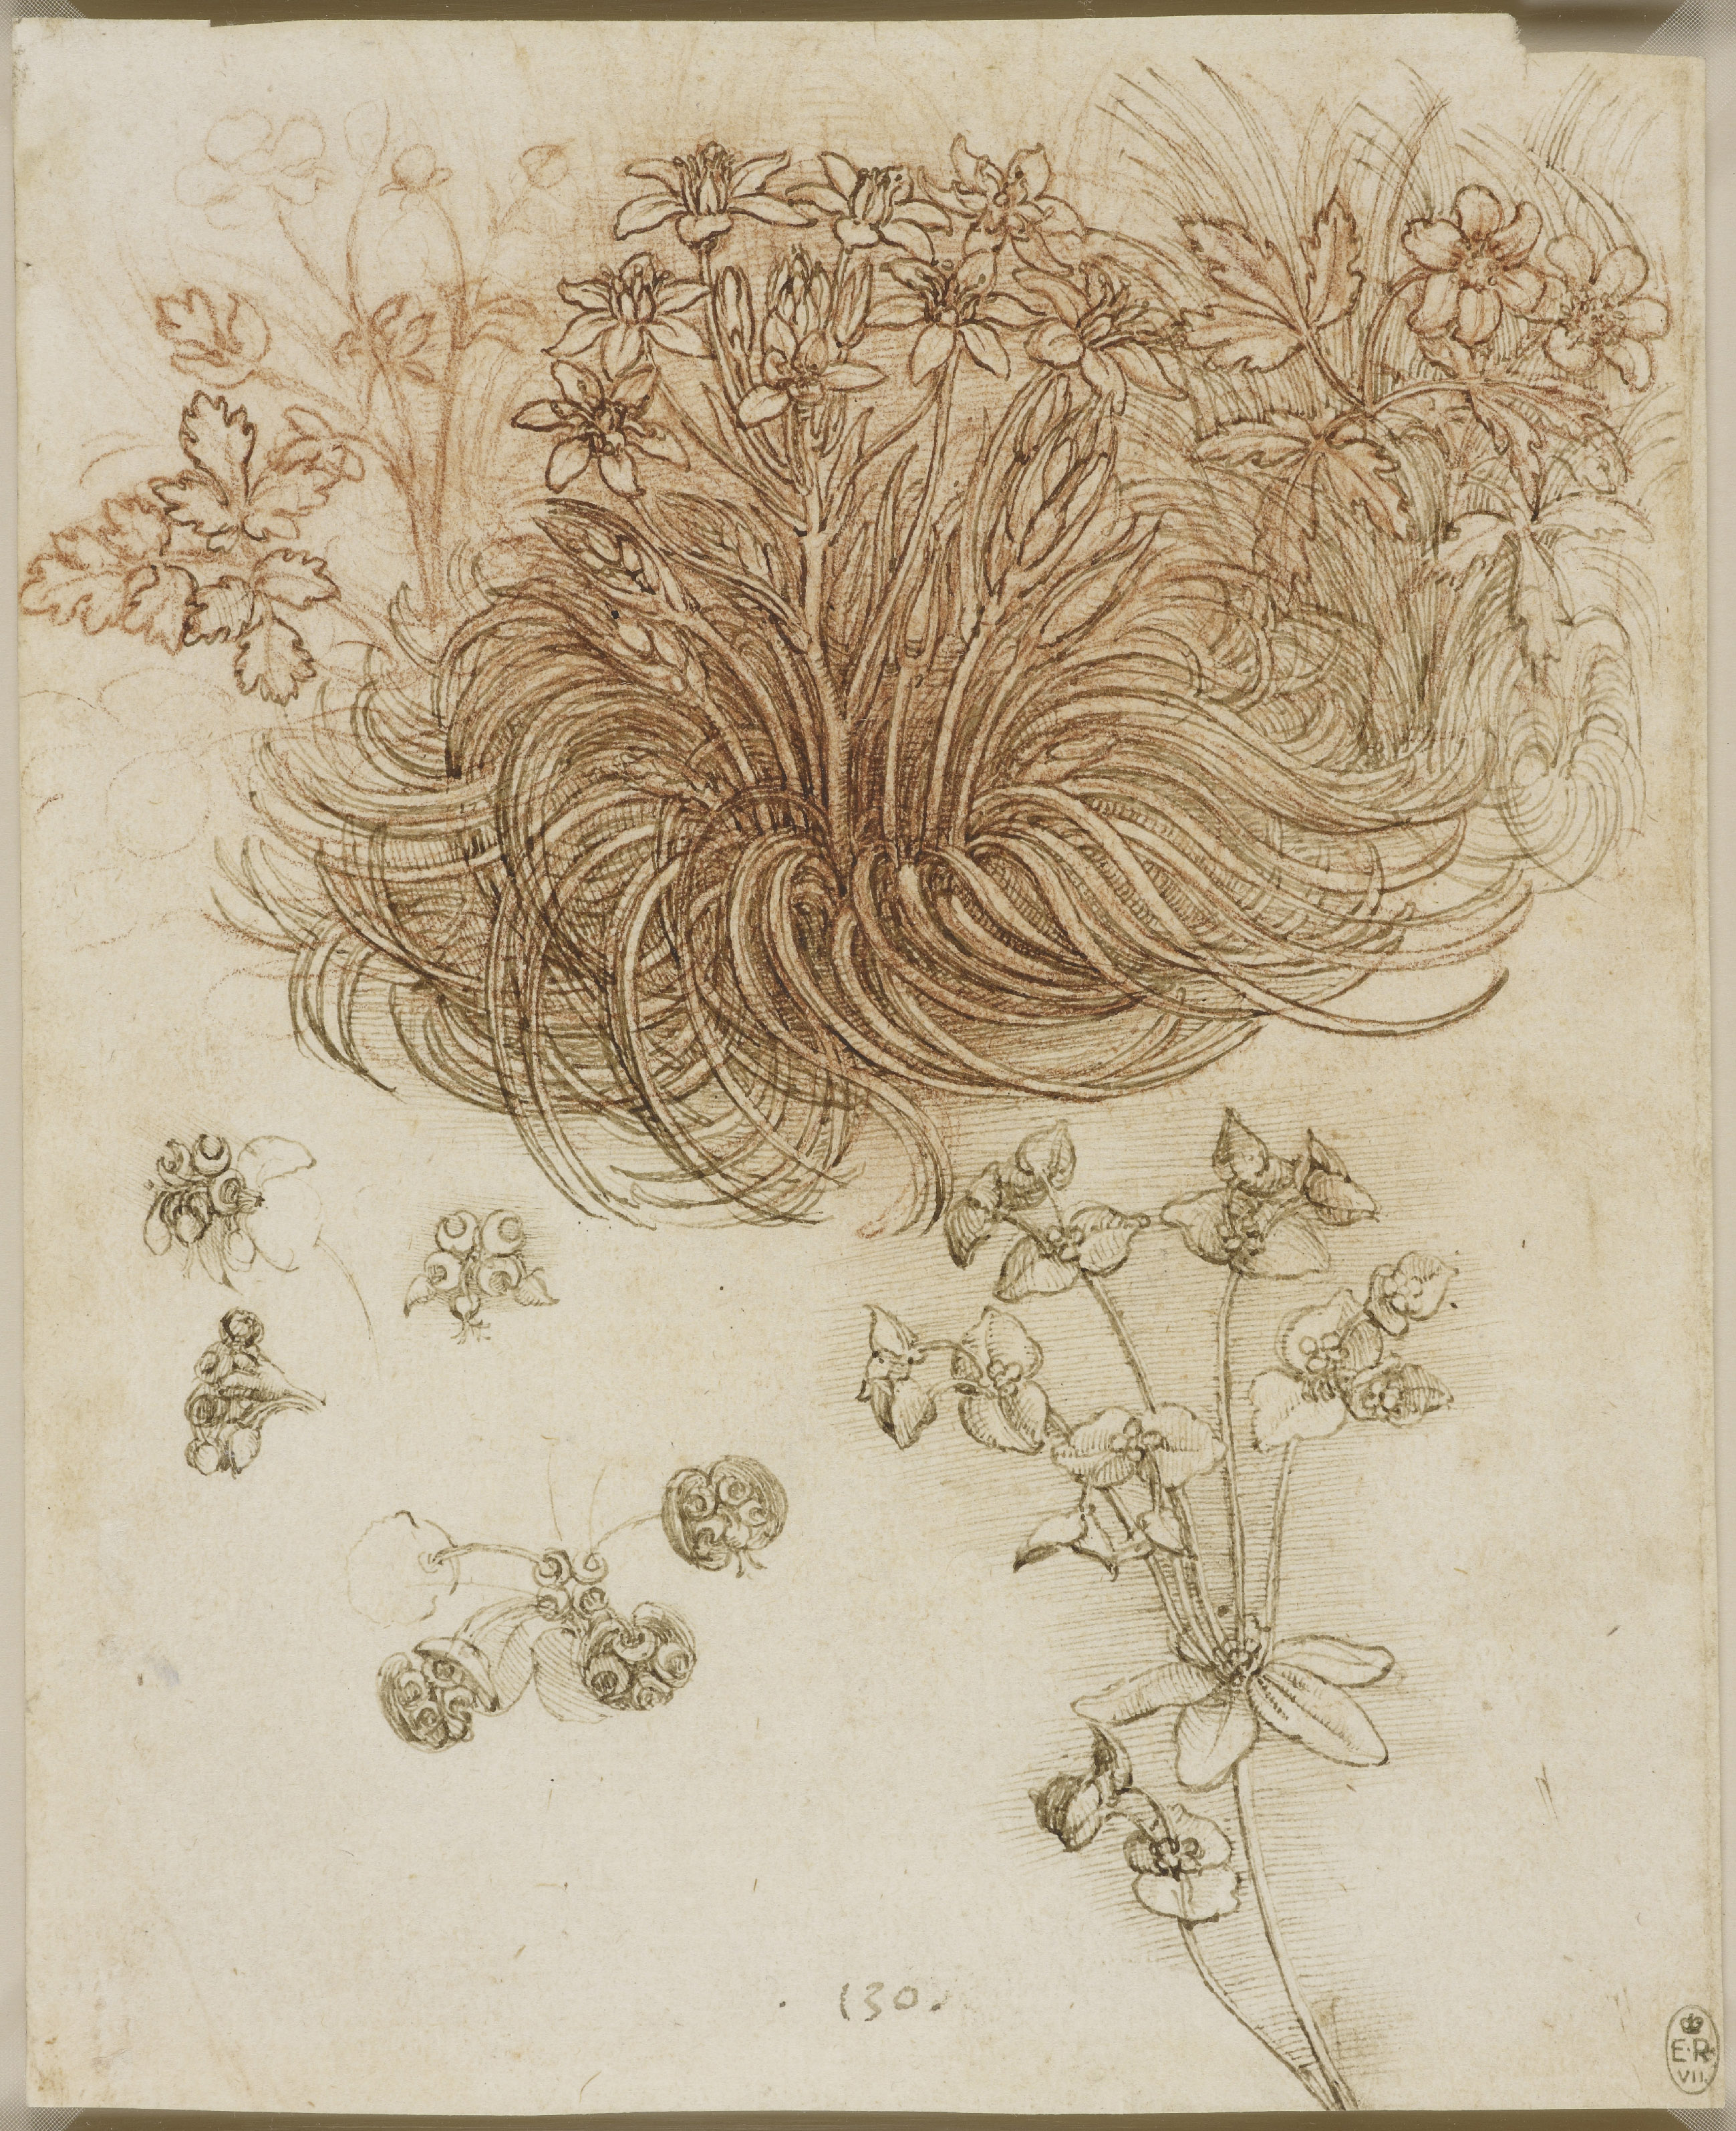 Leonardo da Vinci, A star-of-Bethlehem and other plants, c.1506-12.